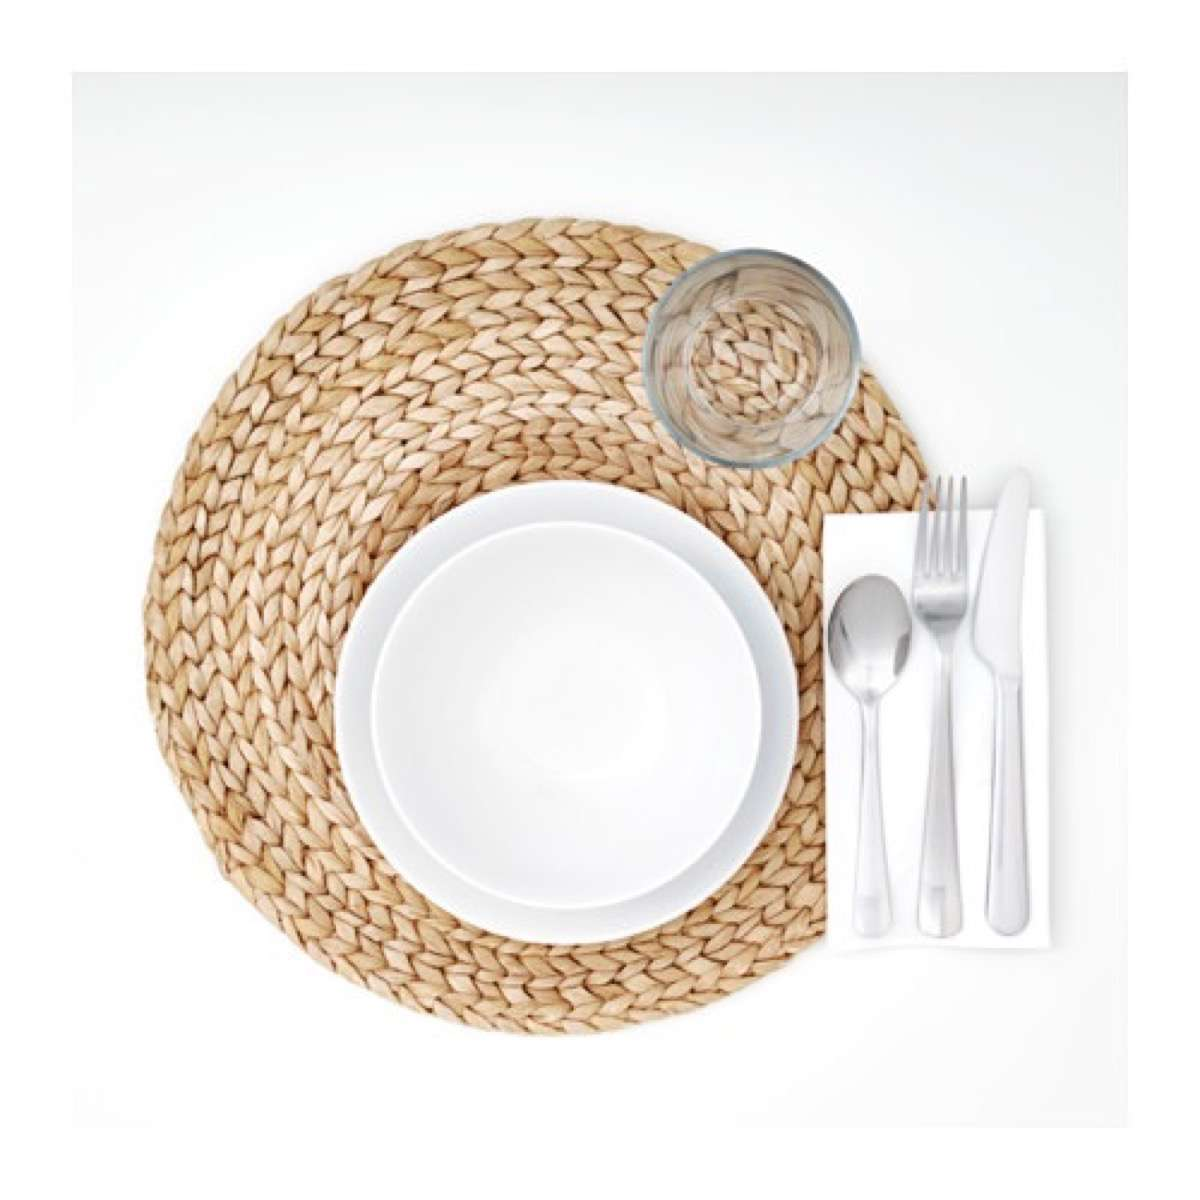 Protege tu mesa con un hule original el perfecto antimanchas for Set de table ikea